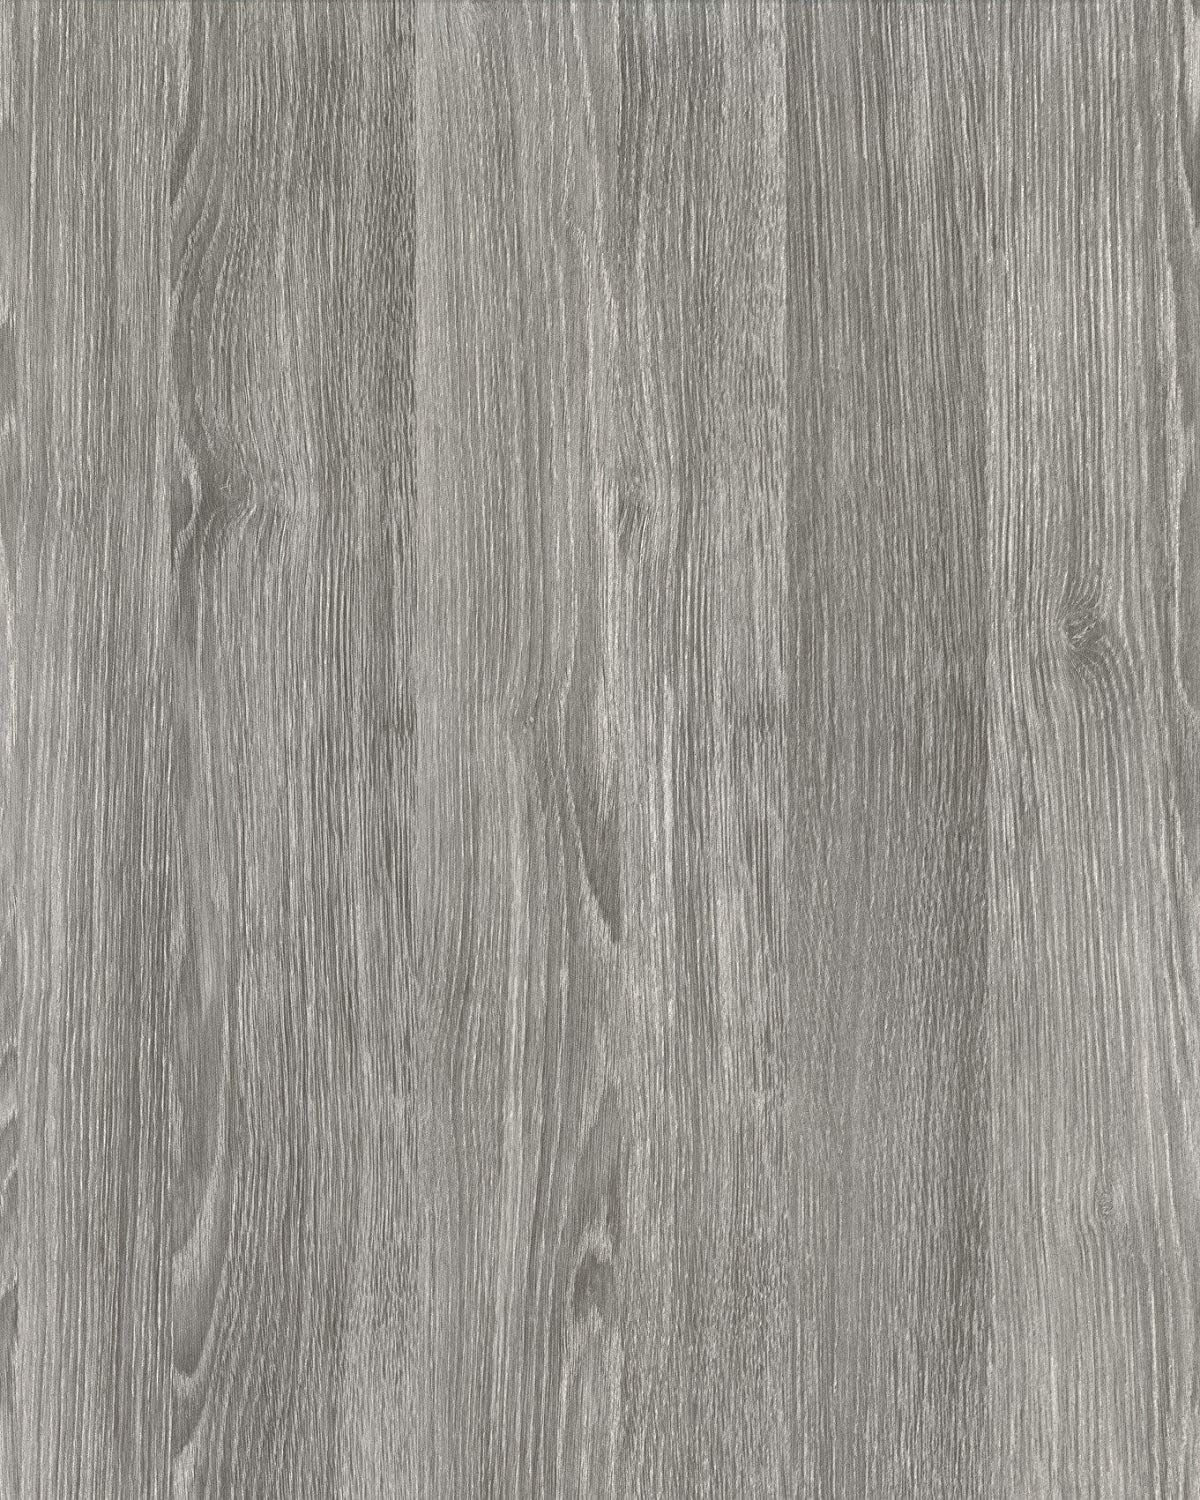 Grey Walnut Veneer Laminate Texture Wood Floor Texture Flooring